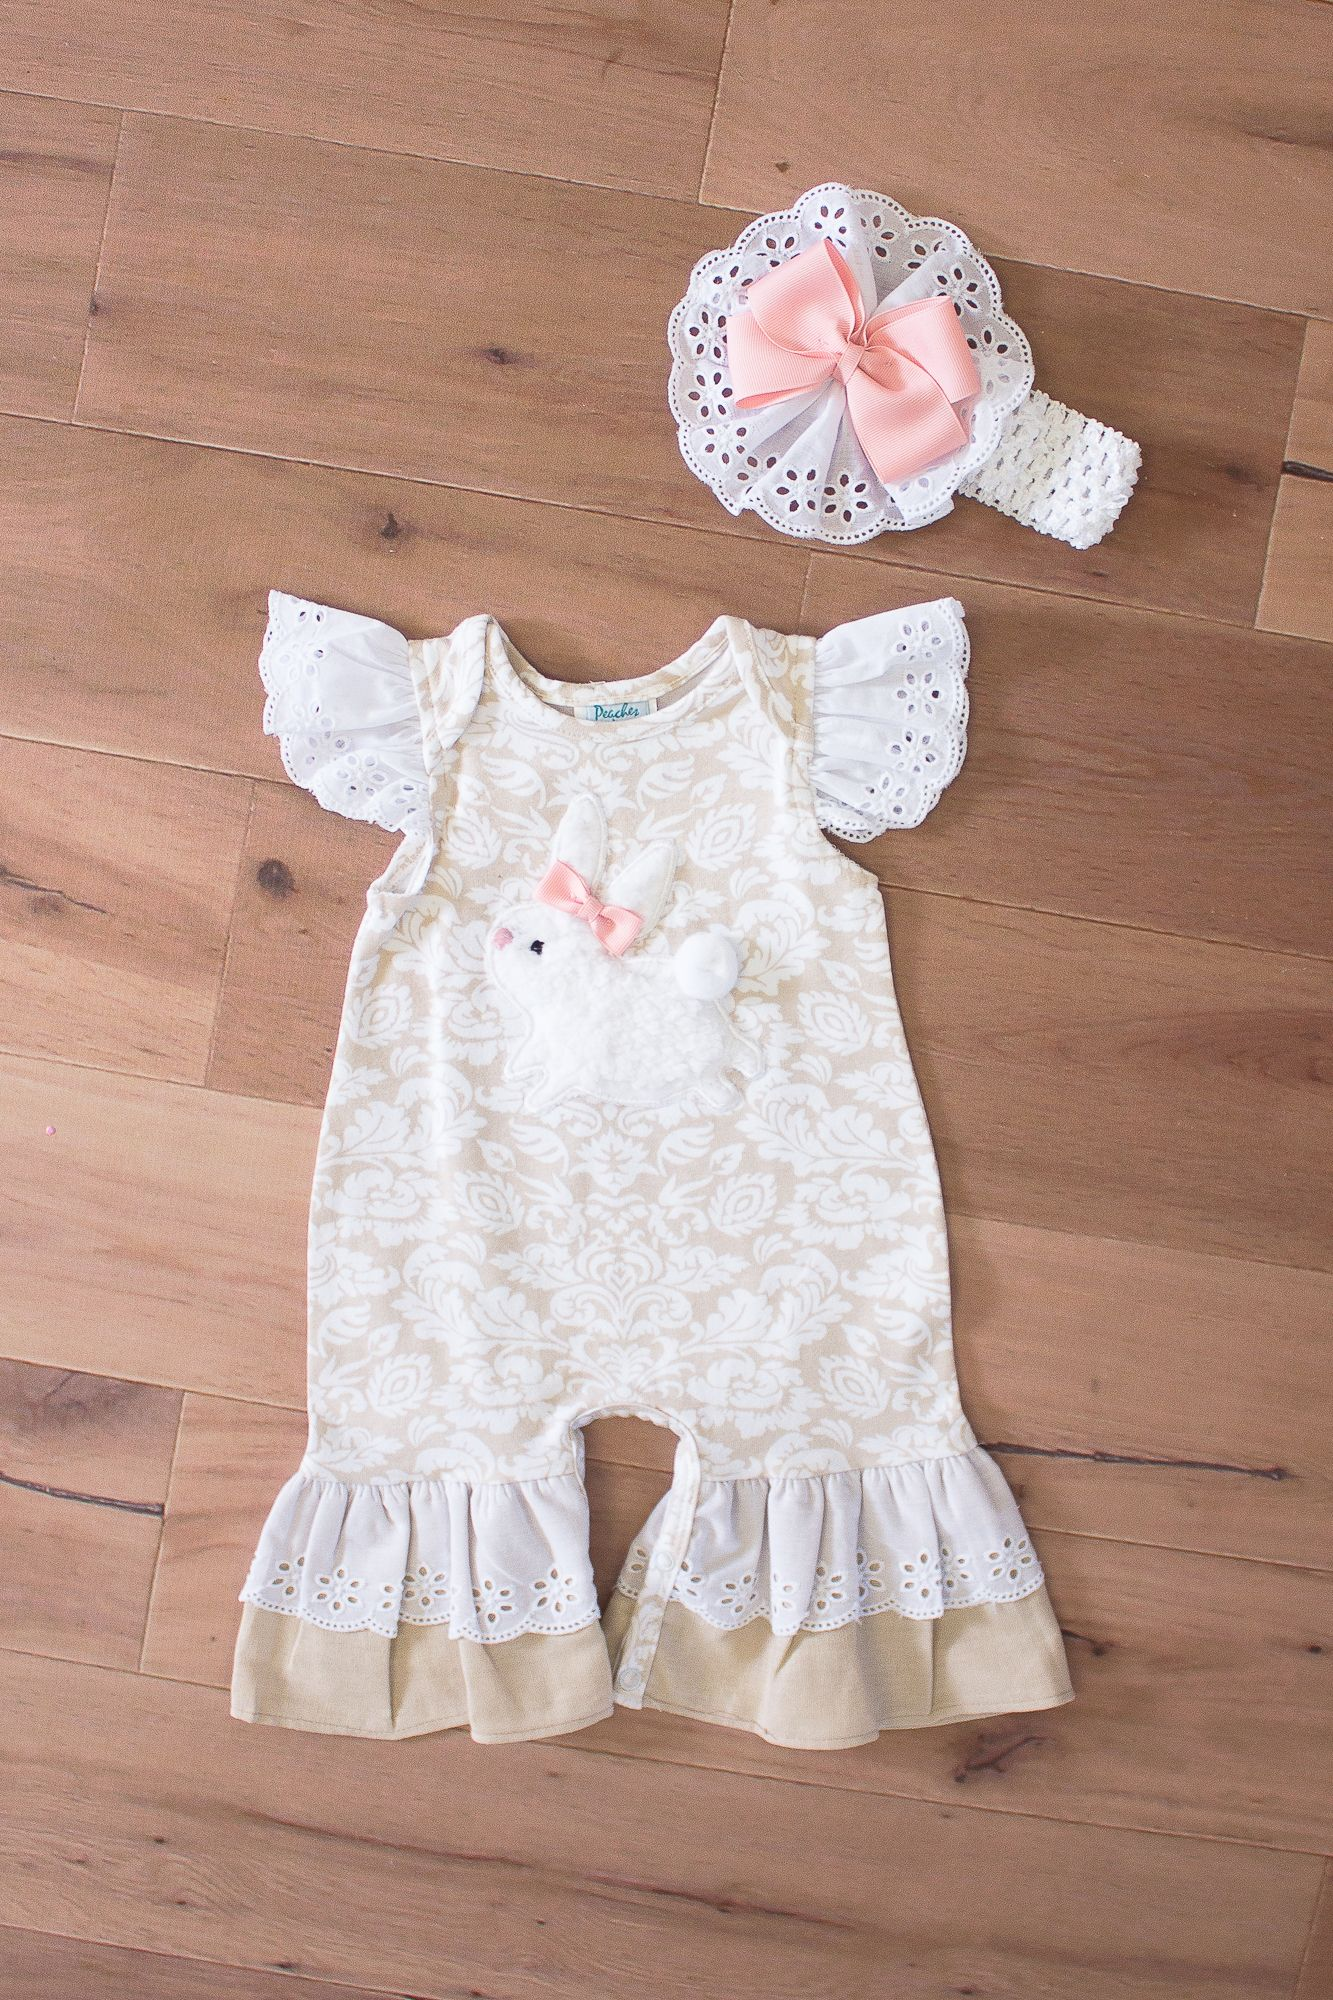 c17b4f013db5 Peaches N Cream Bunny Romper   Headband Set